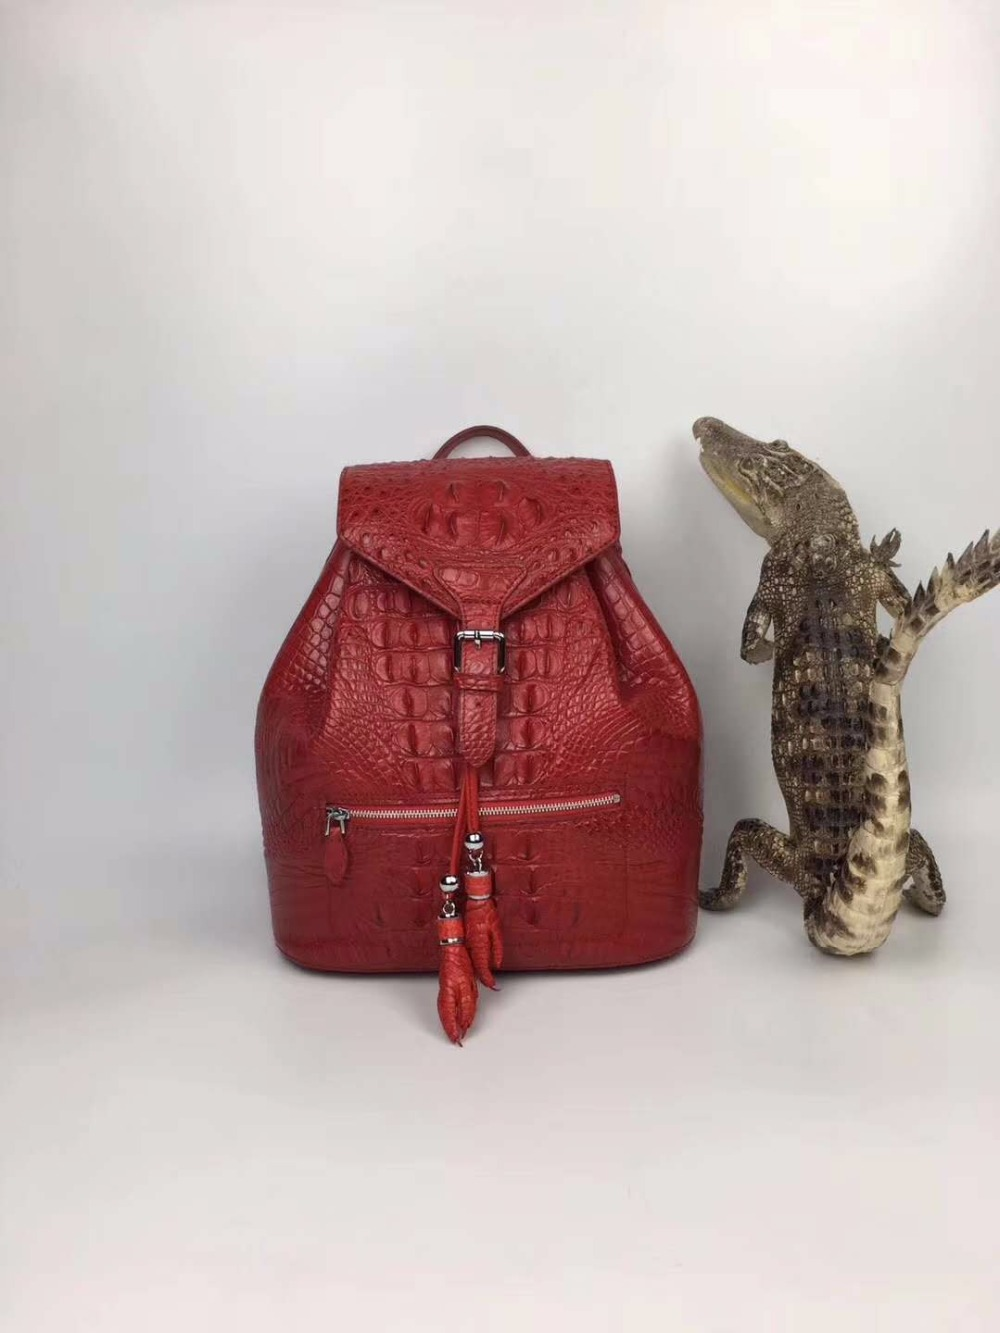 2018 fashion 100% genuine real crocodile skin women backpack bag, alligator skin small lady backpack daily bag 2018 fashion genuine real crocodile skin